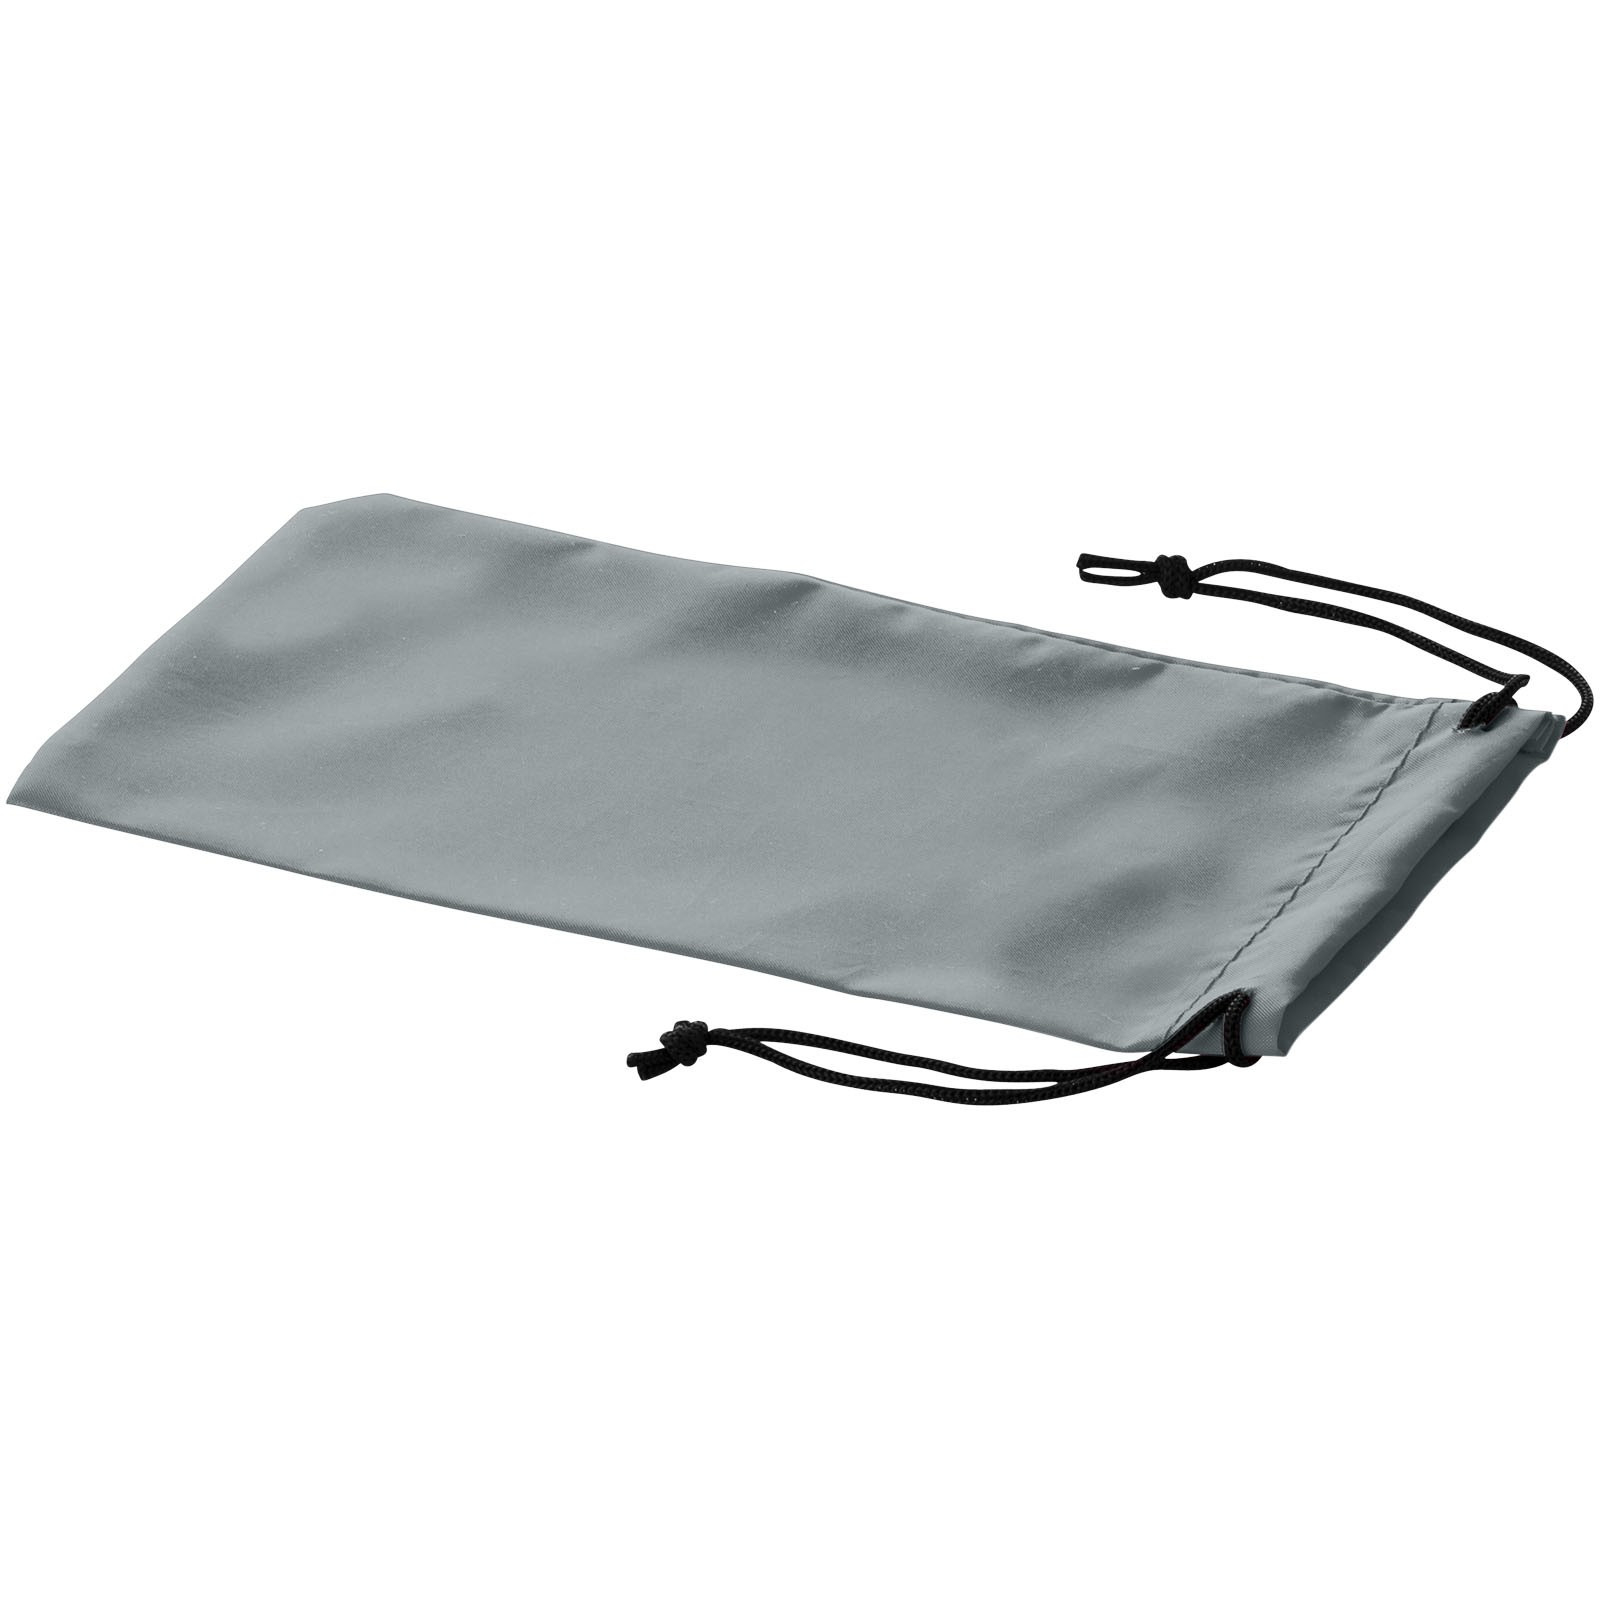 Sagol pouch for sunglasses - Grey